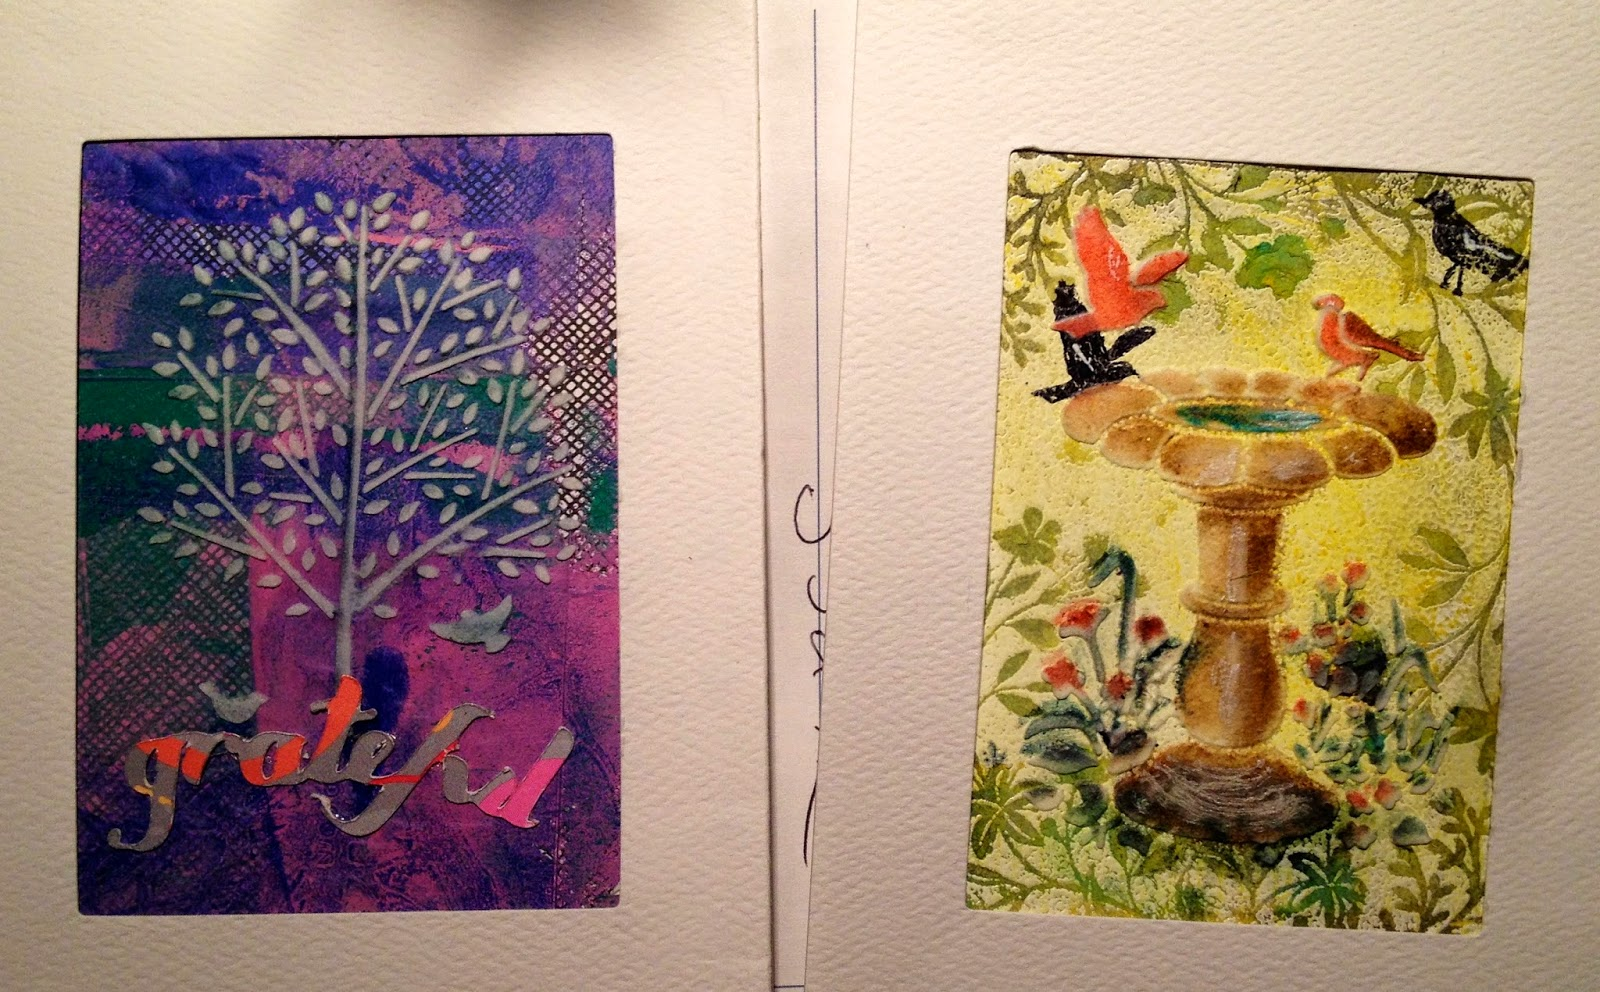 ATC cards by Candice Schwark, Studio-Mosaic